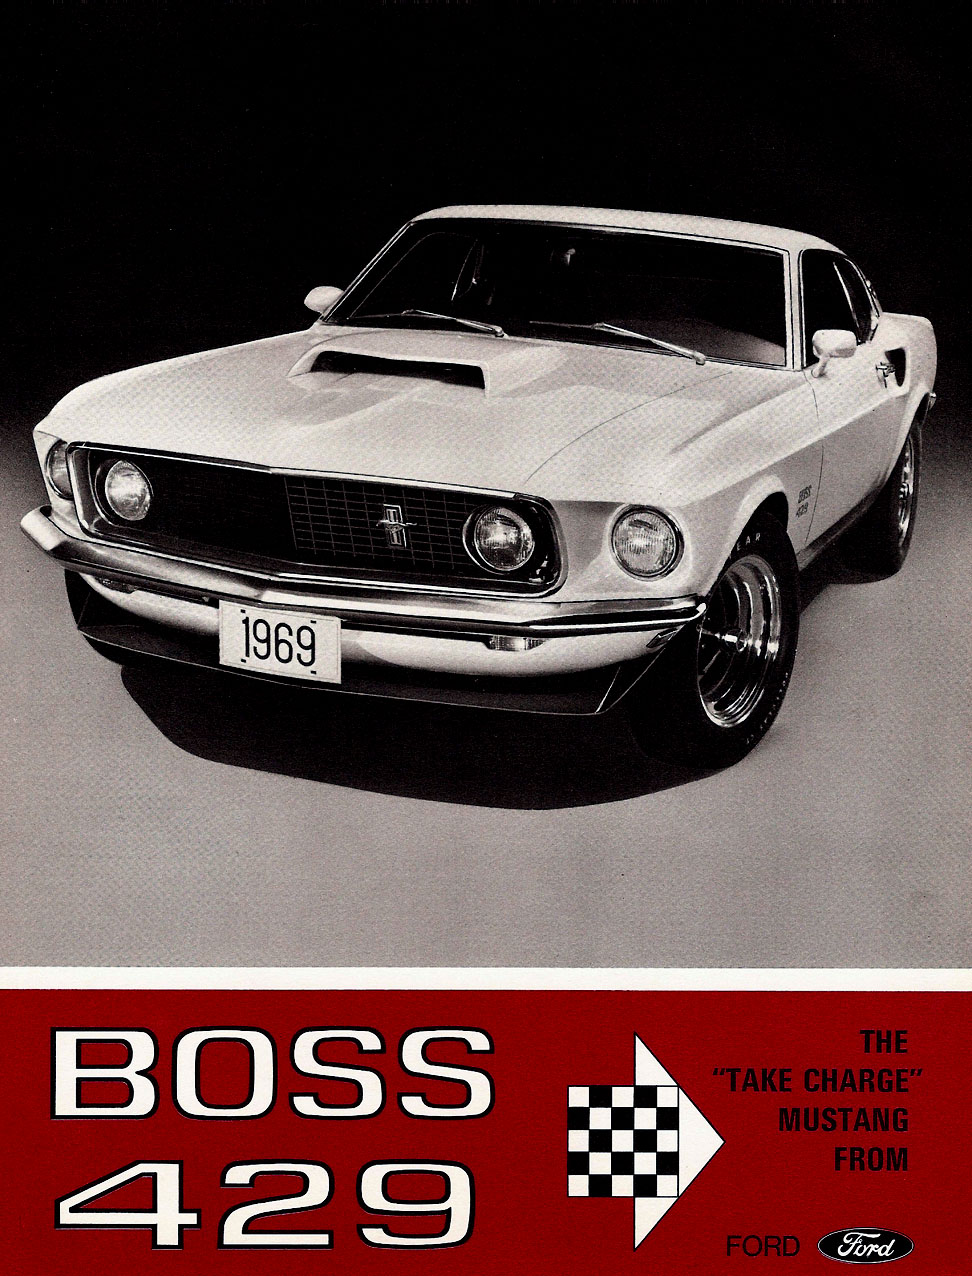 1969 Boss 429 - the 'take charge' Mustang from Ford